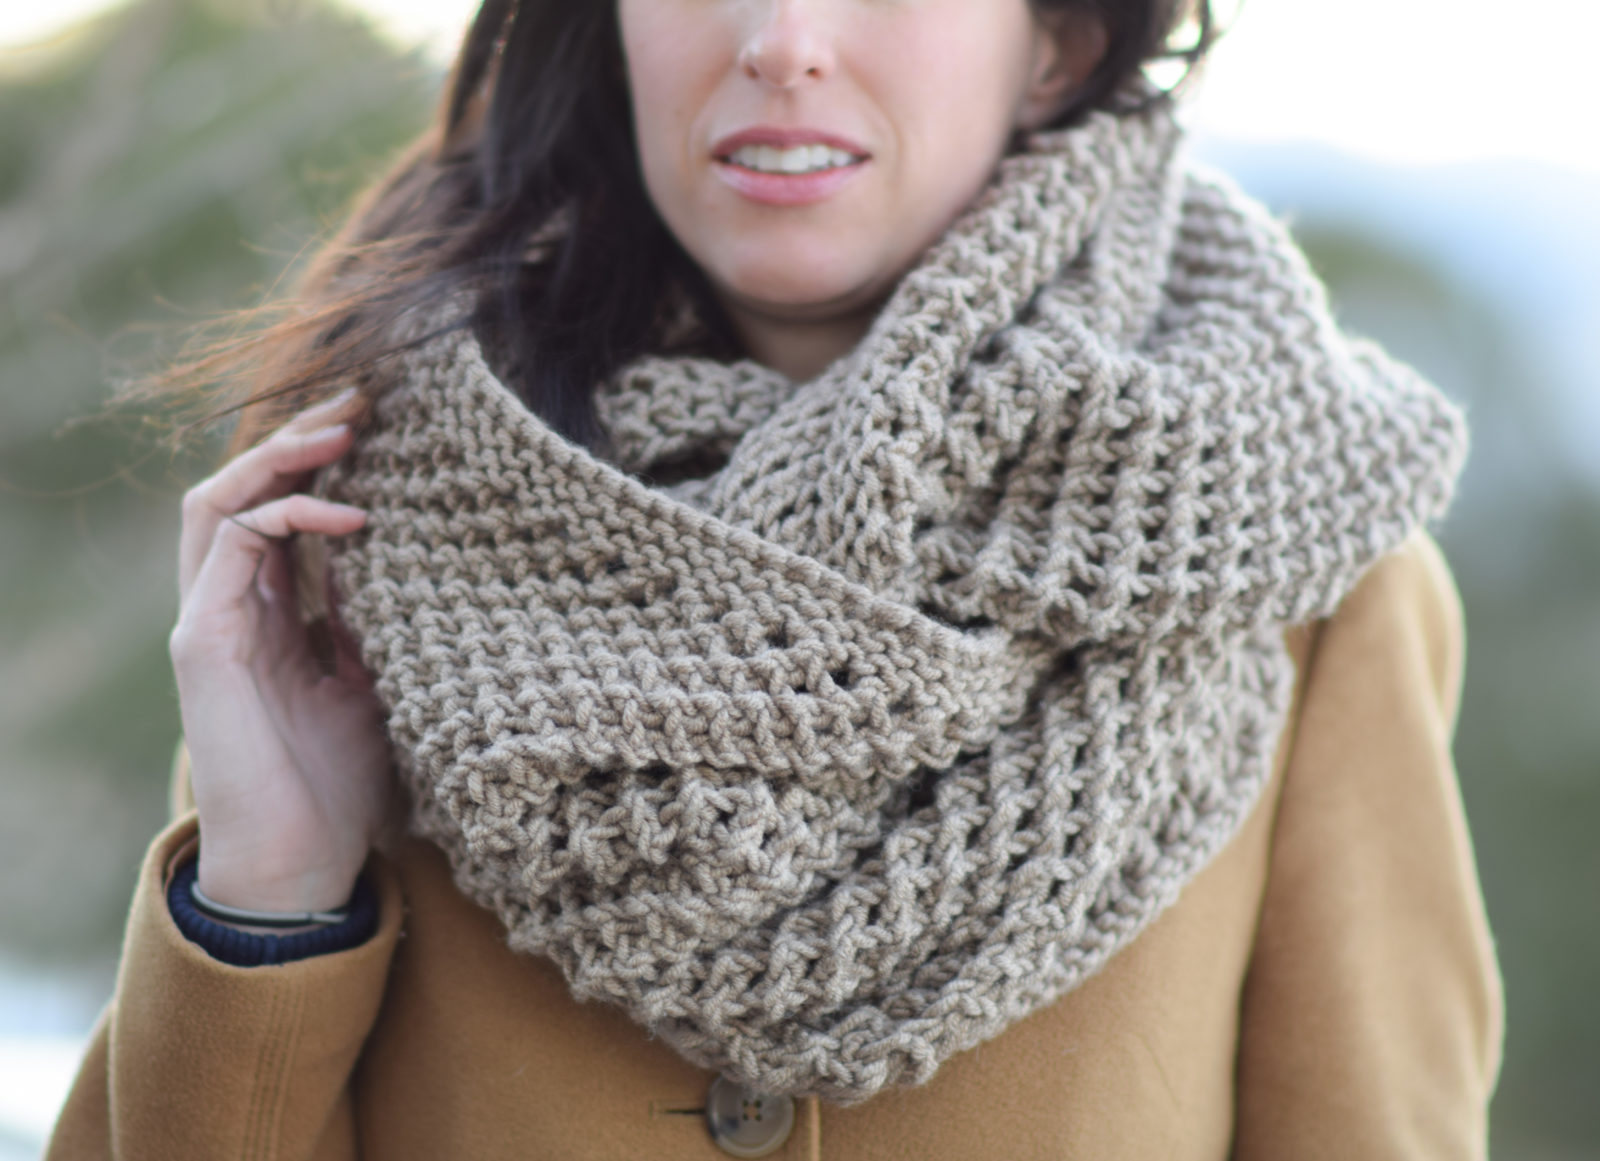 The Traveler Knit Infinicowl Scarf - We've gathered here 21 cozy scarf knitting patterns that you can knit quickly, just in time for fall and impending winter. #ScarfKnittingPatterns #KnittingPatterns #ScarfPatterns